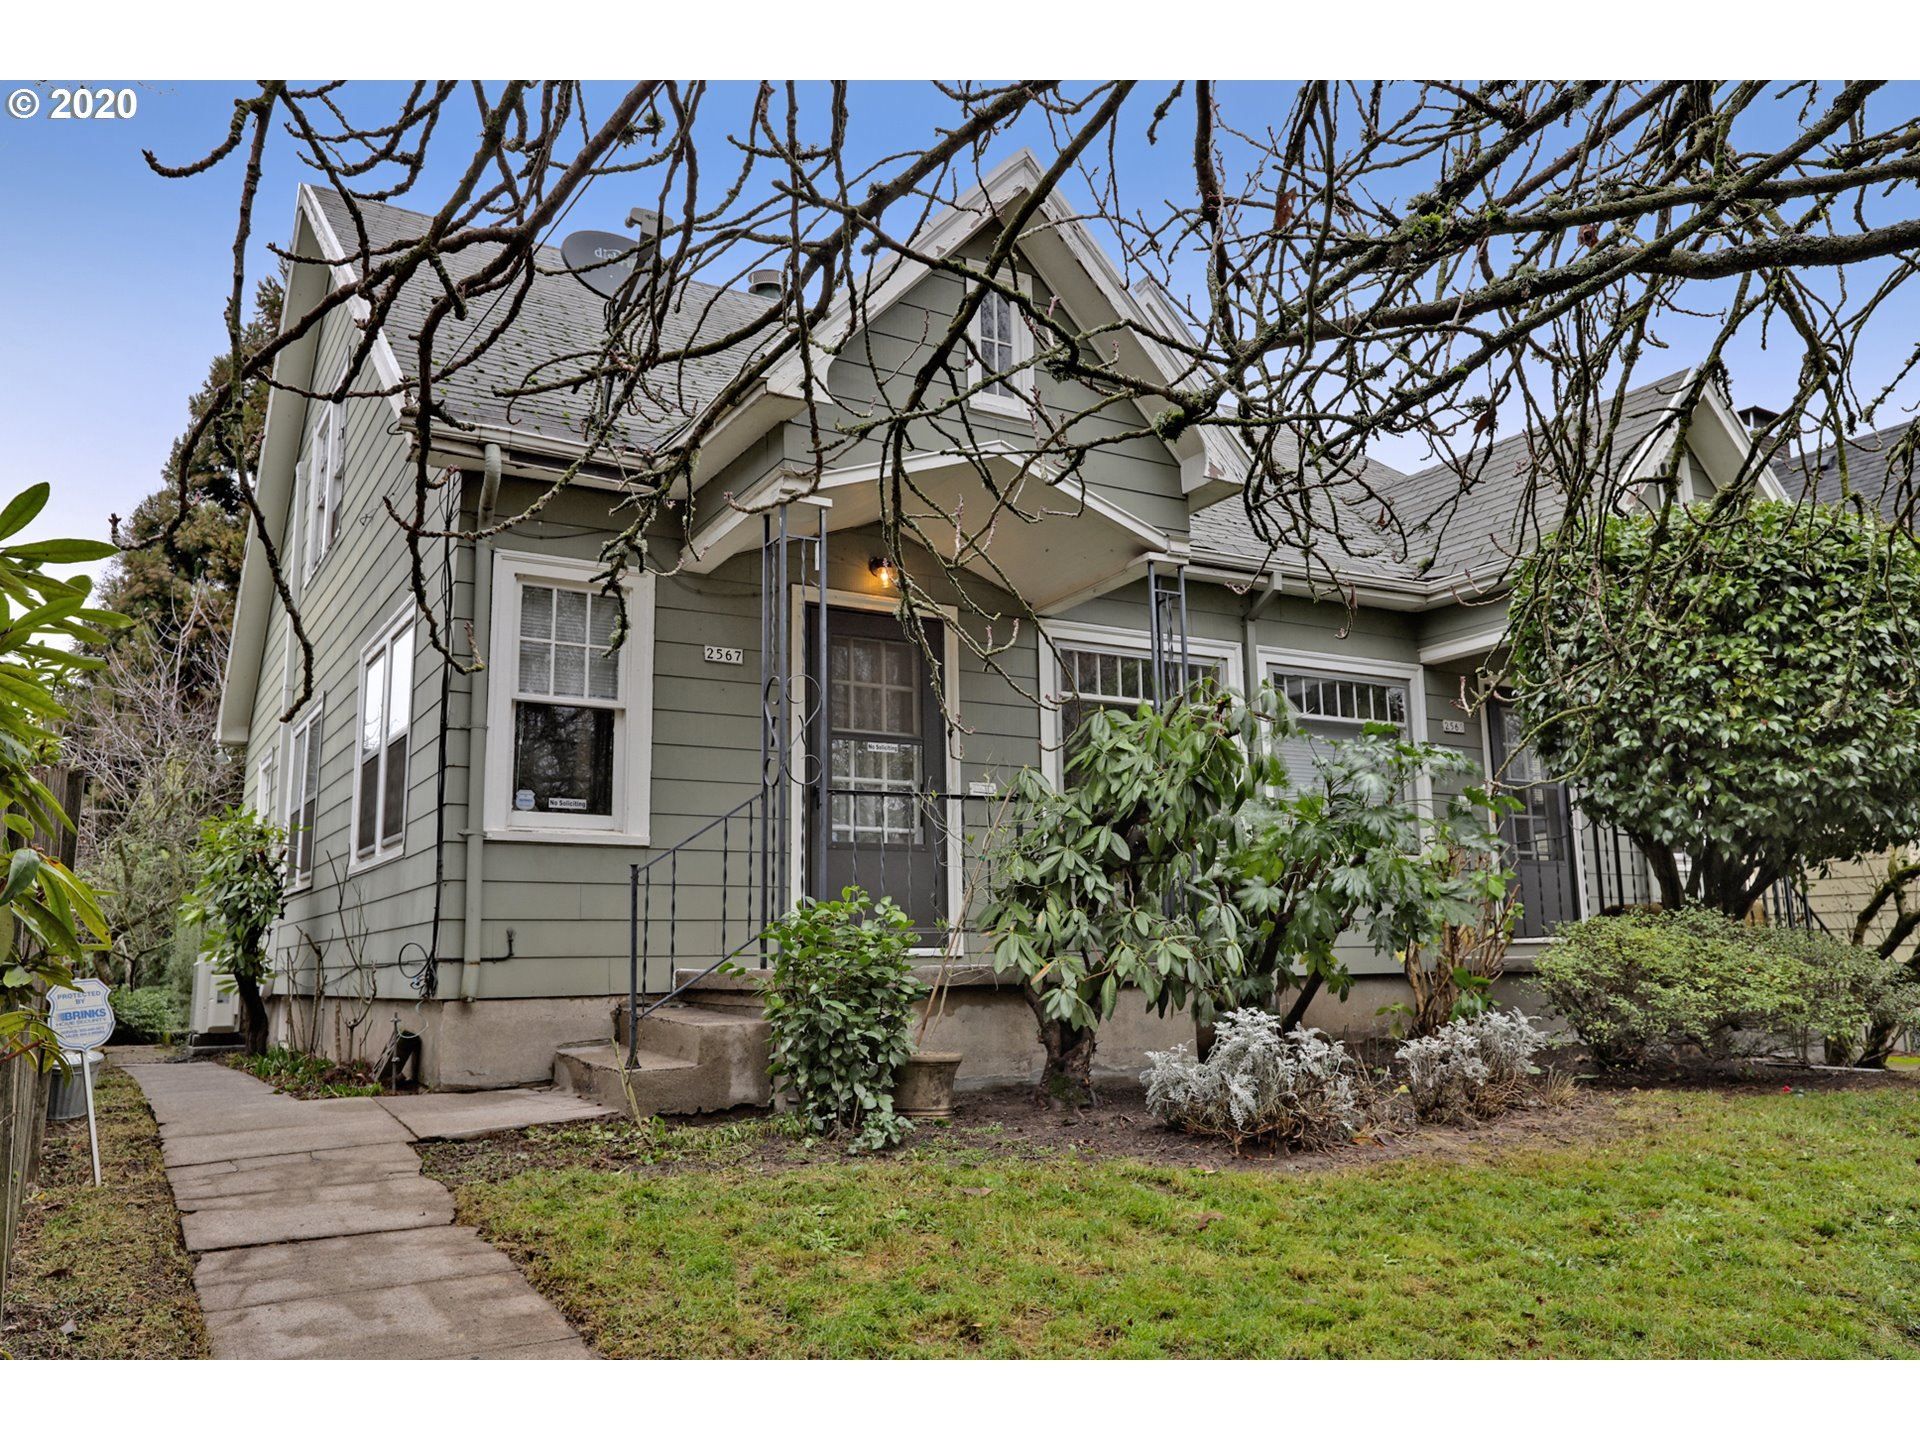 2567 NW RALEIGH ST, Portland, OR 97210 - MLS#: 20541372